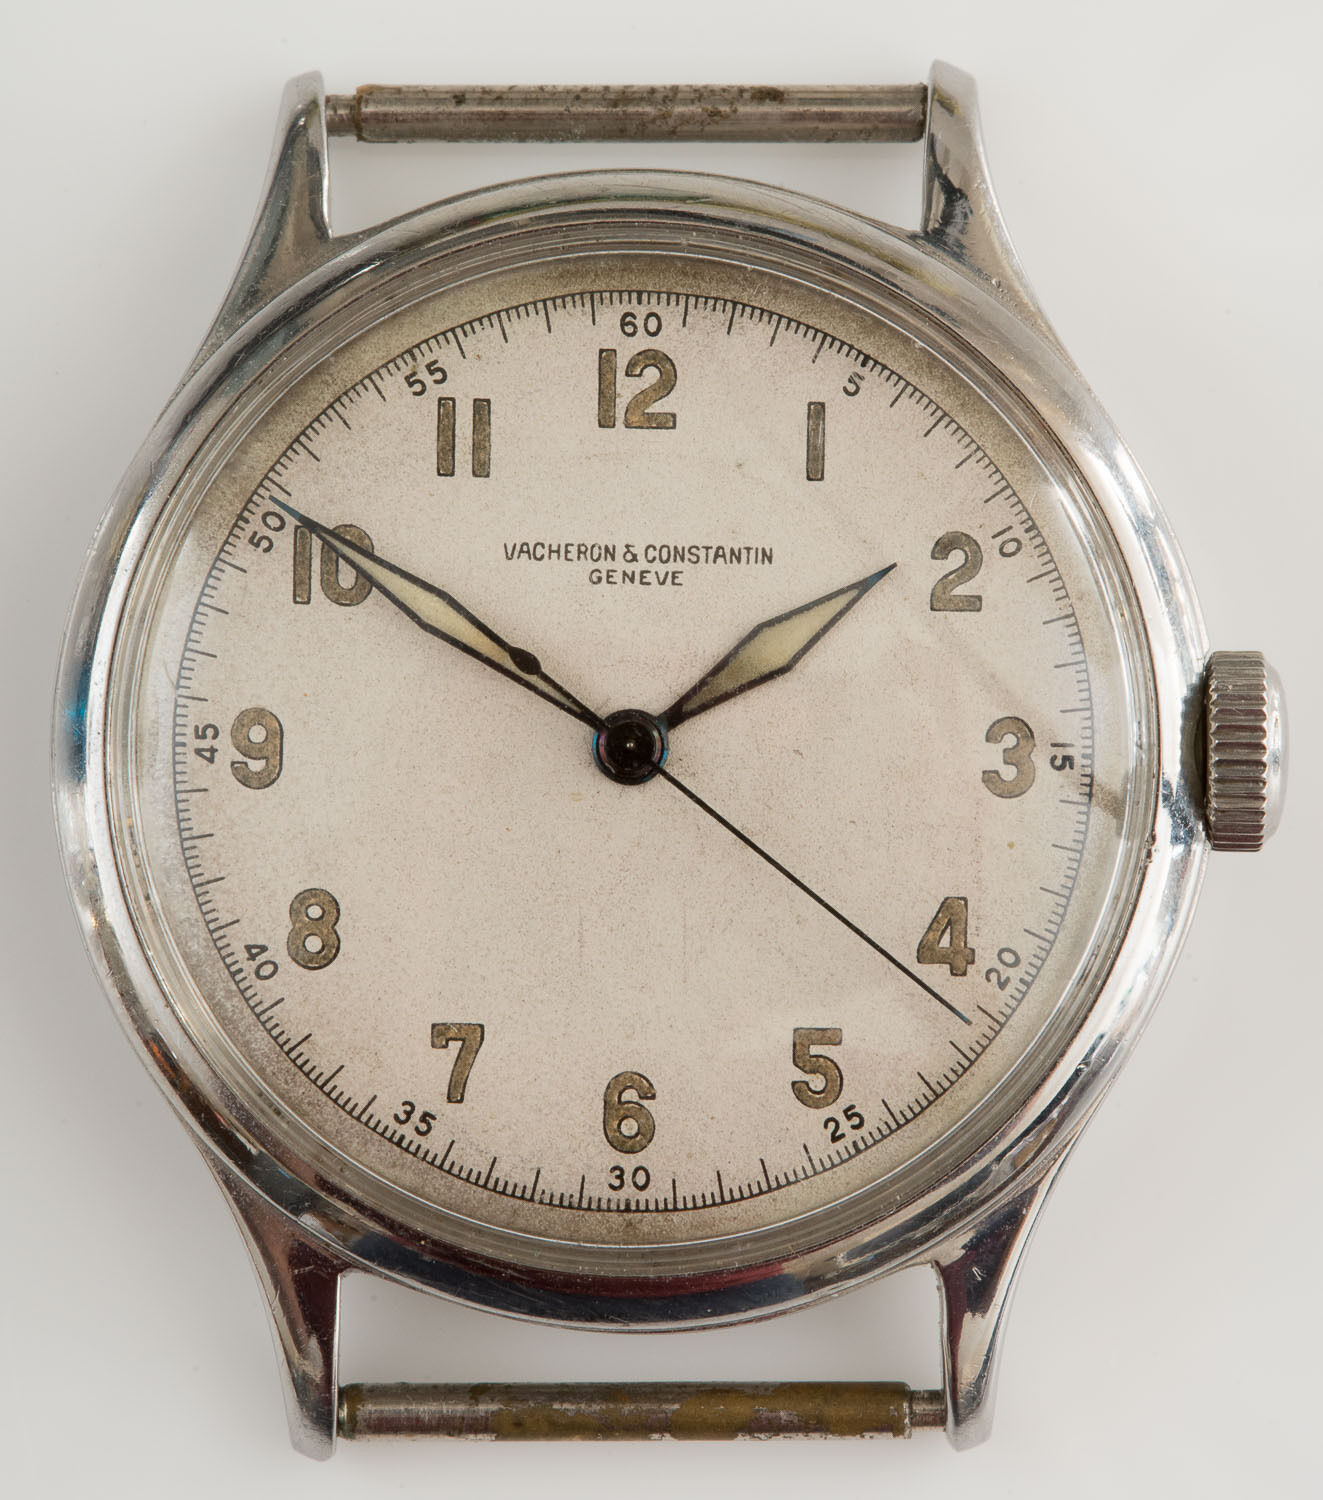 VINTAGE 1940s VACHERON & CONSTANTIN STAINLESS STEEL MILITARY TYPE MAN'S WATCH! - watch picture 1